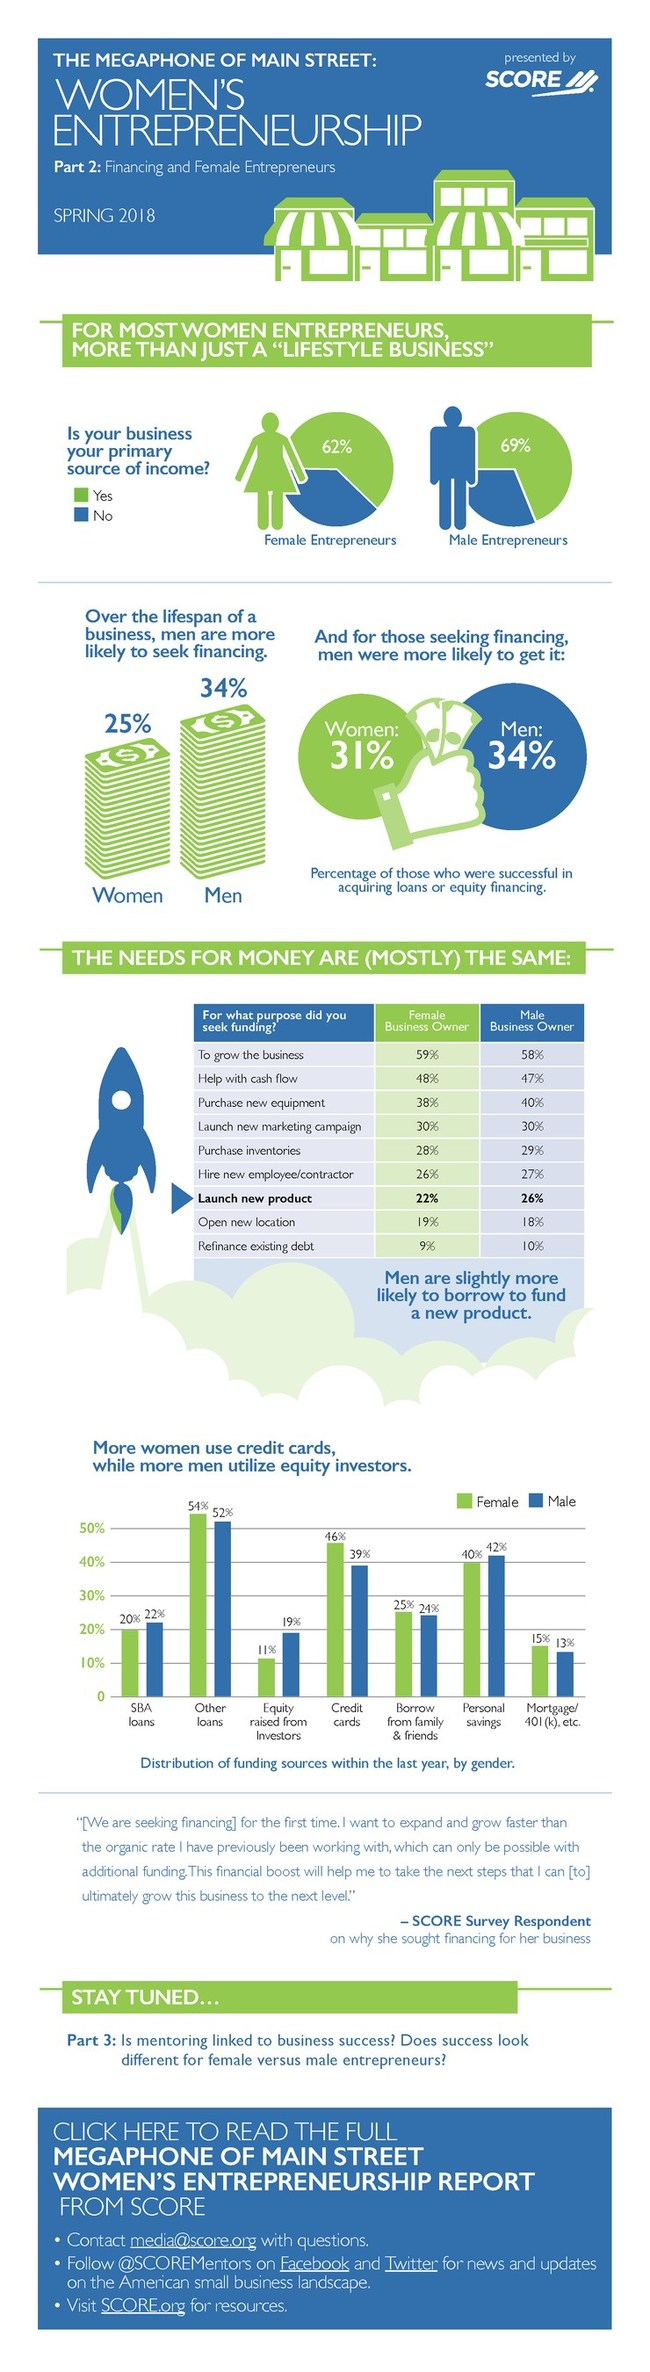 SCORE, mentors to America's small businesses, has published original survey data showing that women entrepreneurs are less likely than men to seek and obtain financing, even though they are starting businesses faster than men, and their businesses are just as successful in terms of business starts, revenue growth, job creation and longevity. This difficult financial climate for women entrepreneurs makes them more likely than men to rely on credit cards as a source of business funding.